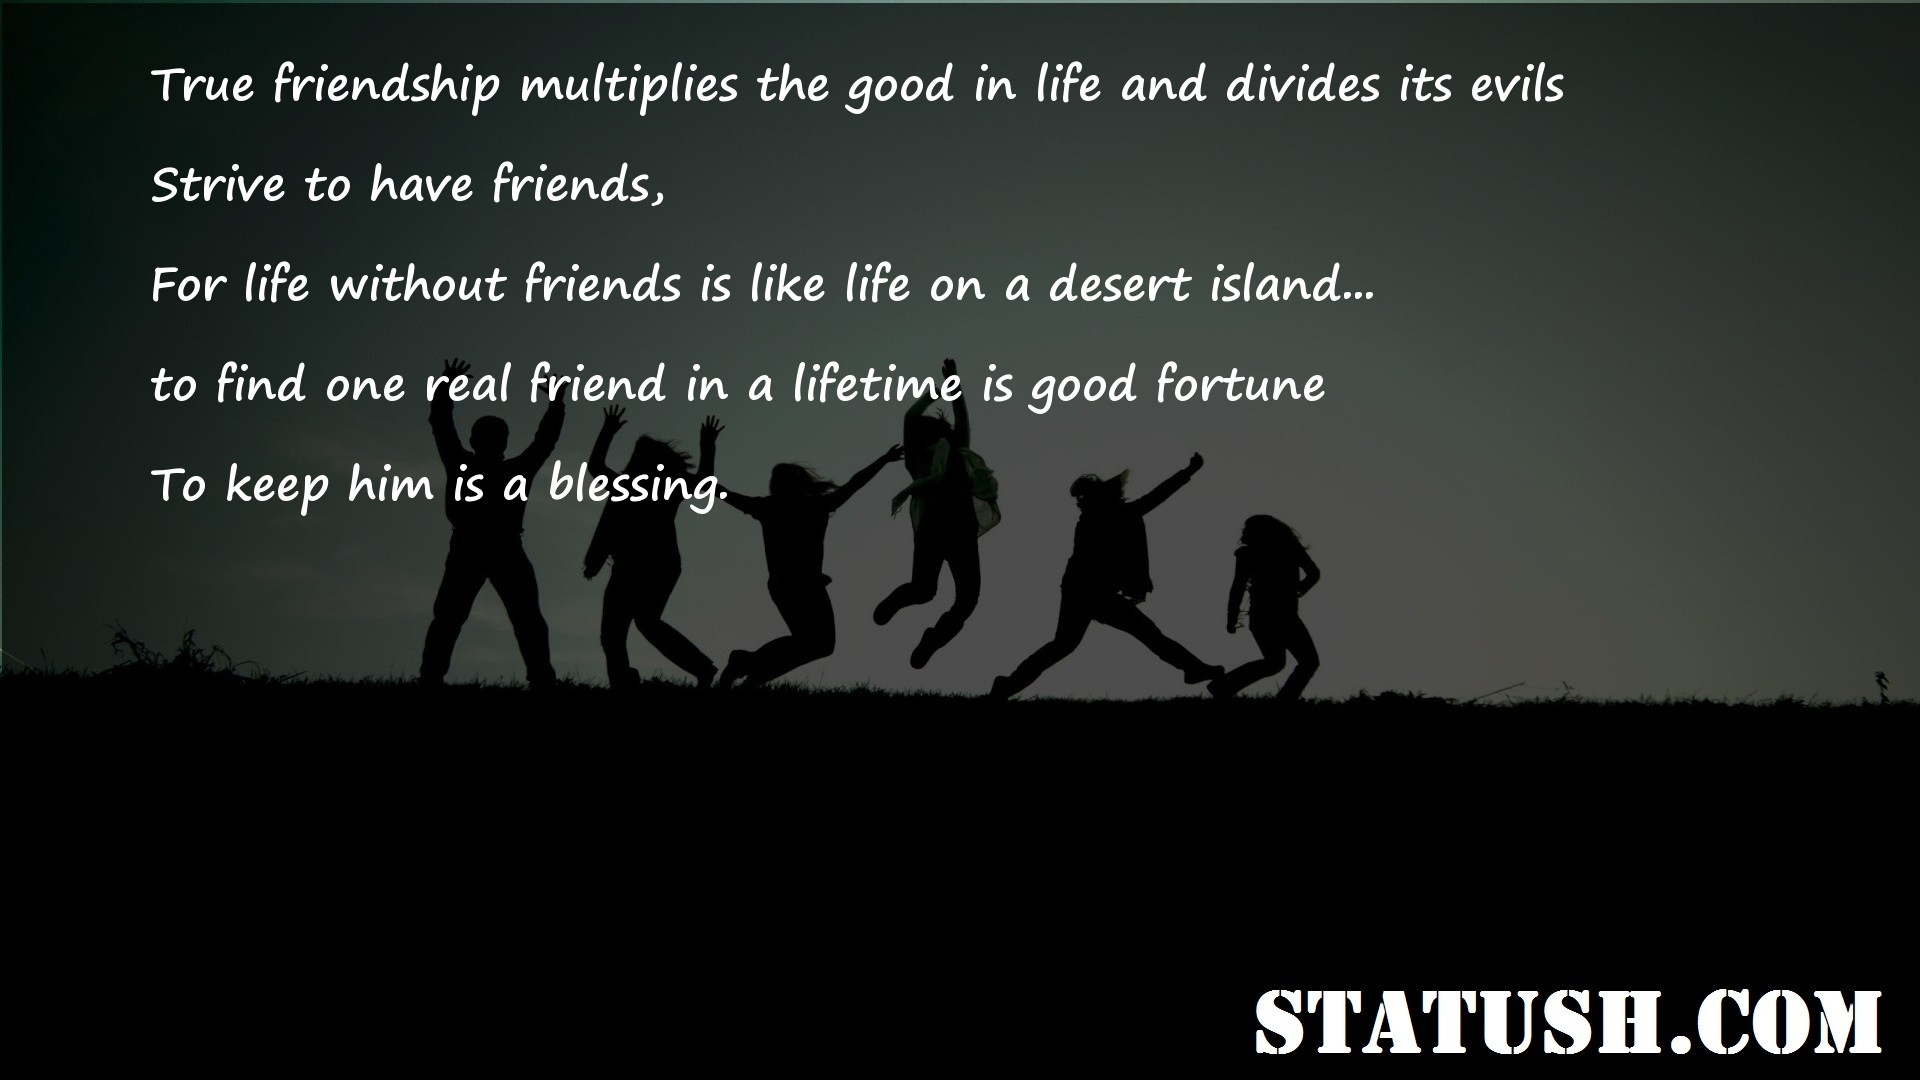 True friendship multiplies the good in life and divides its evils